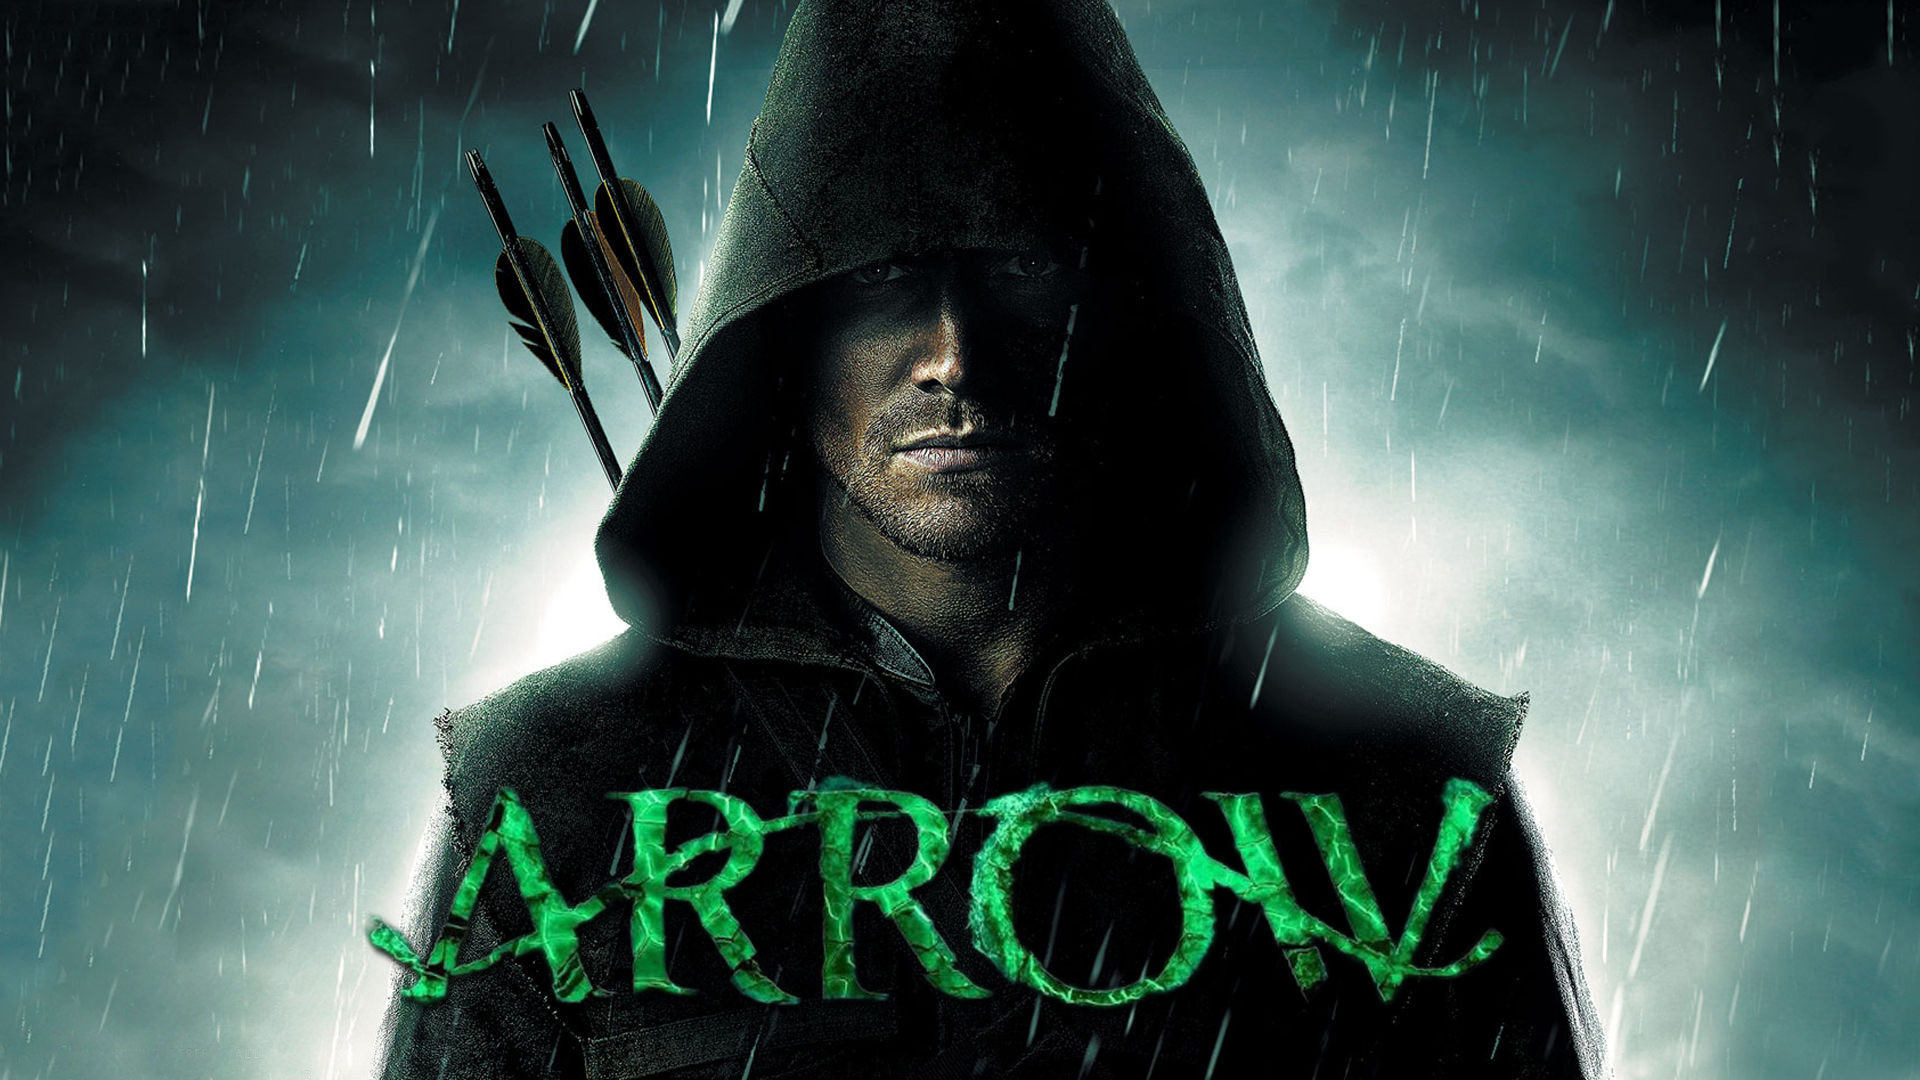 Arrow HD Wallpapers: Find best latest Arrow HD Wallpapers for your PC  desktop background &